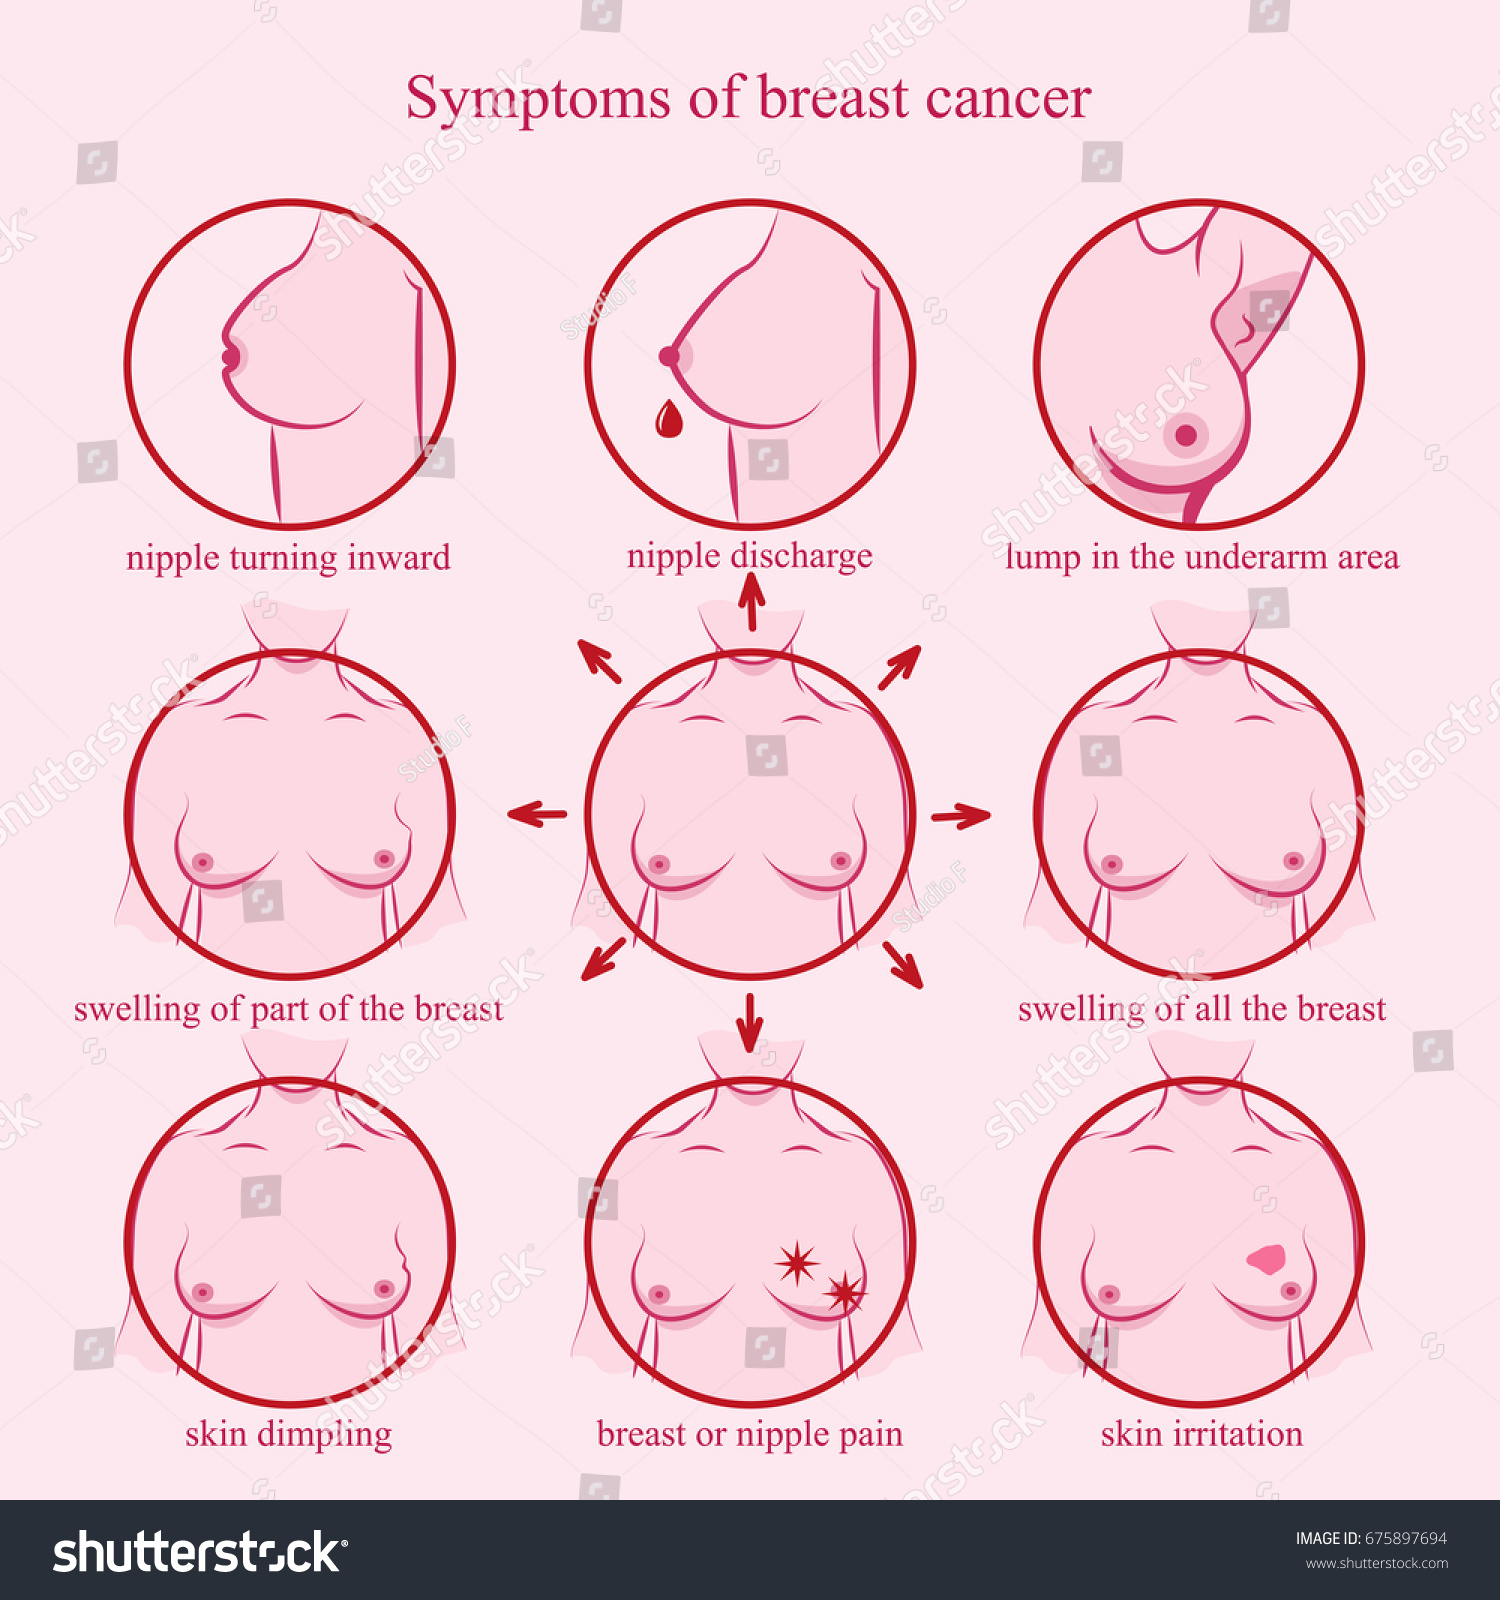 Symptoms Breast Cancer Medicine Pathology Anatomy Vector de ...